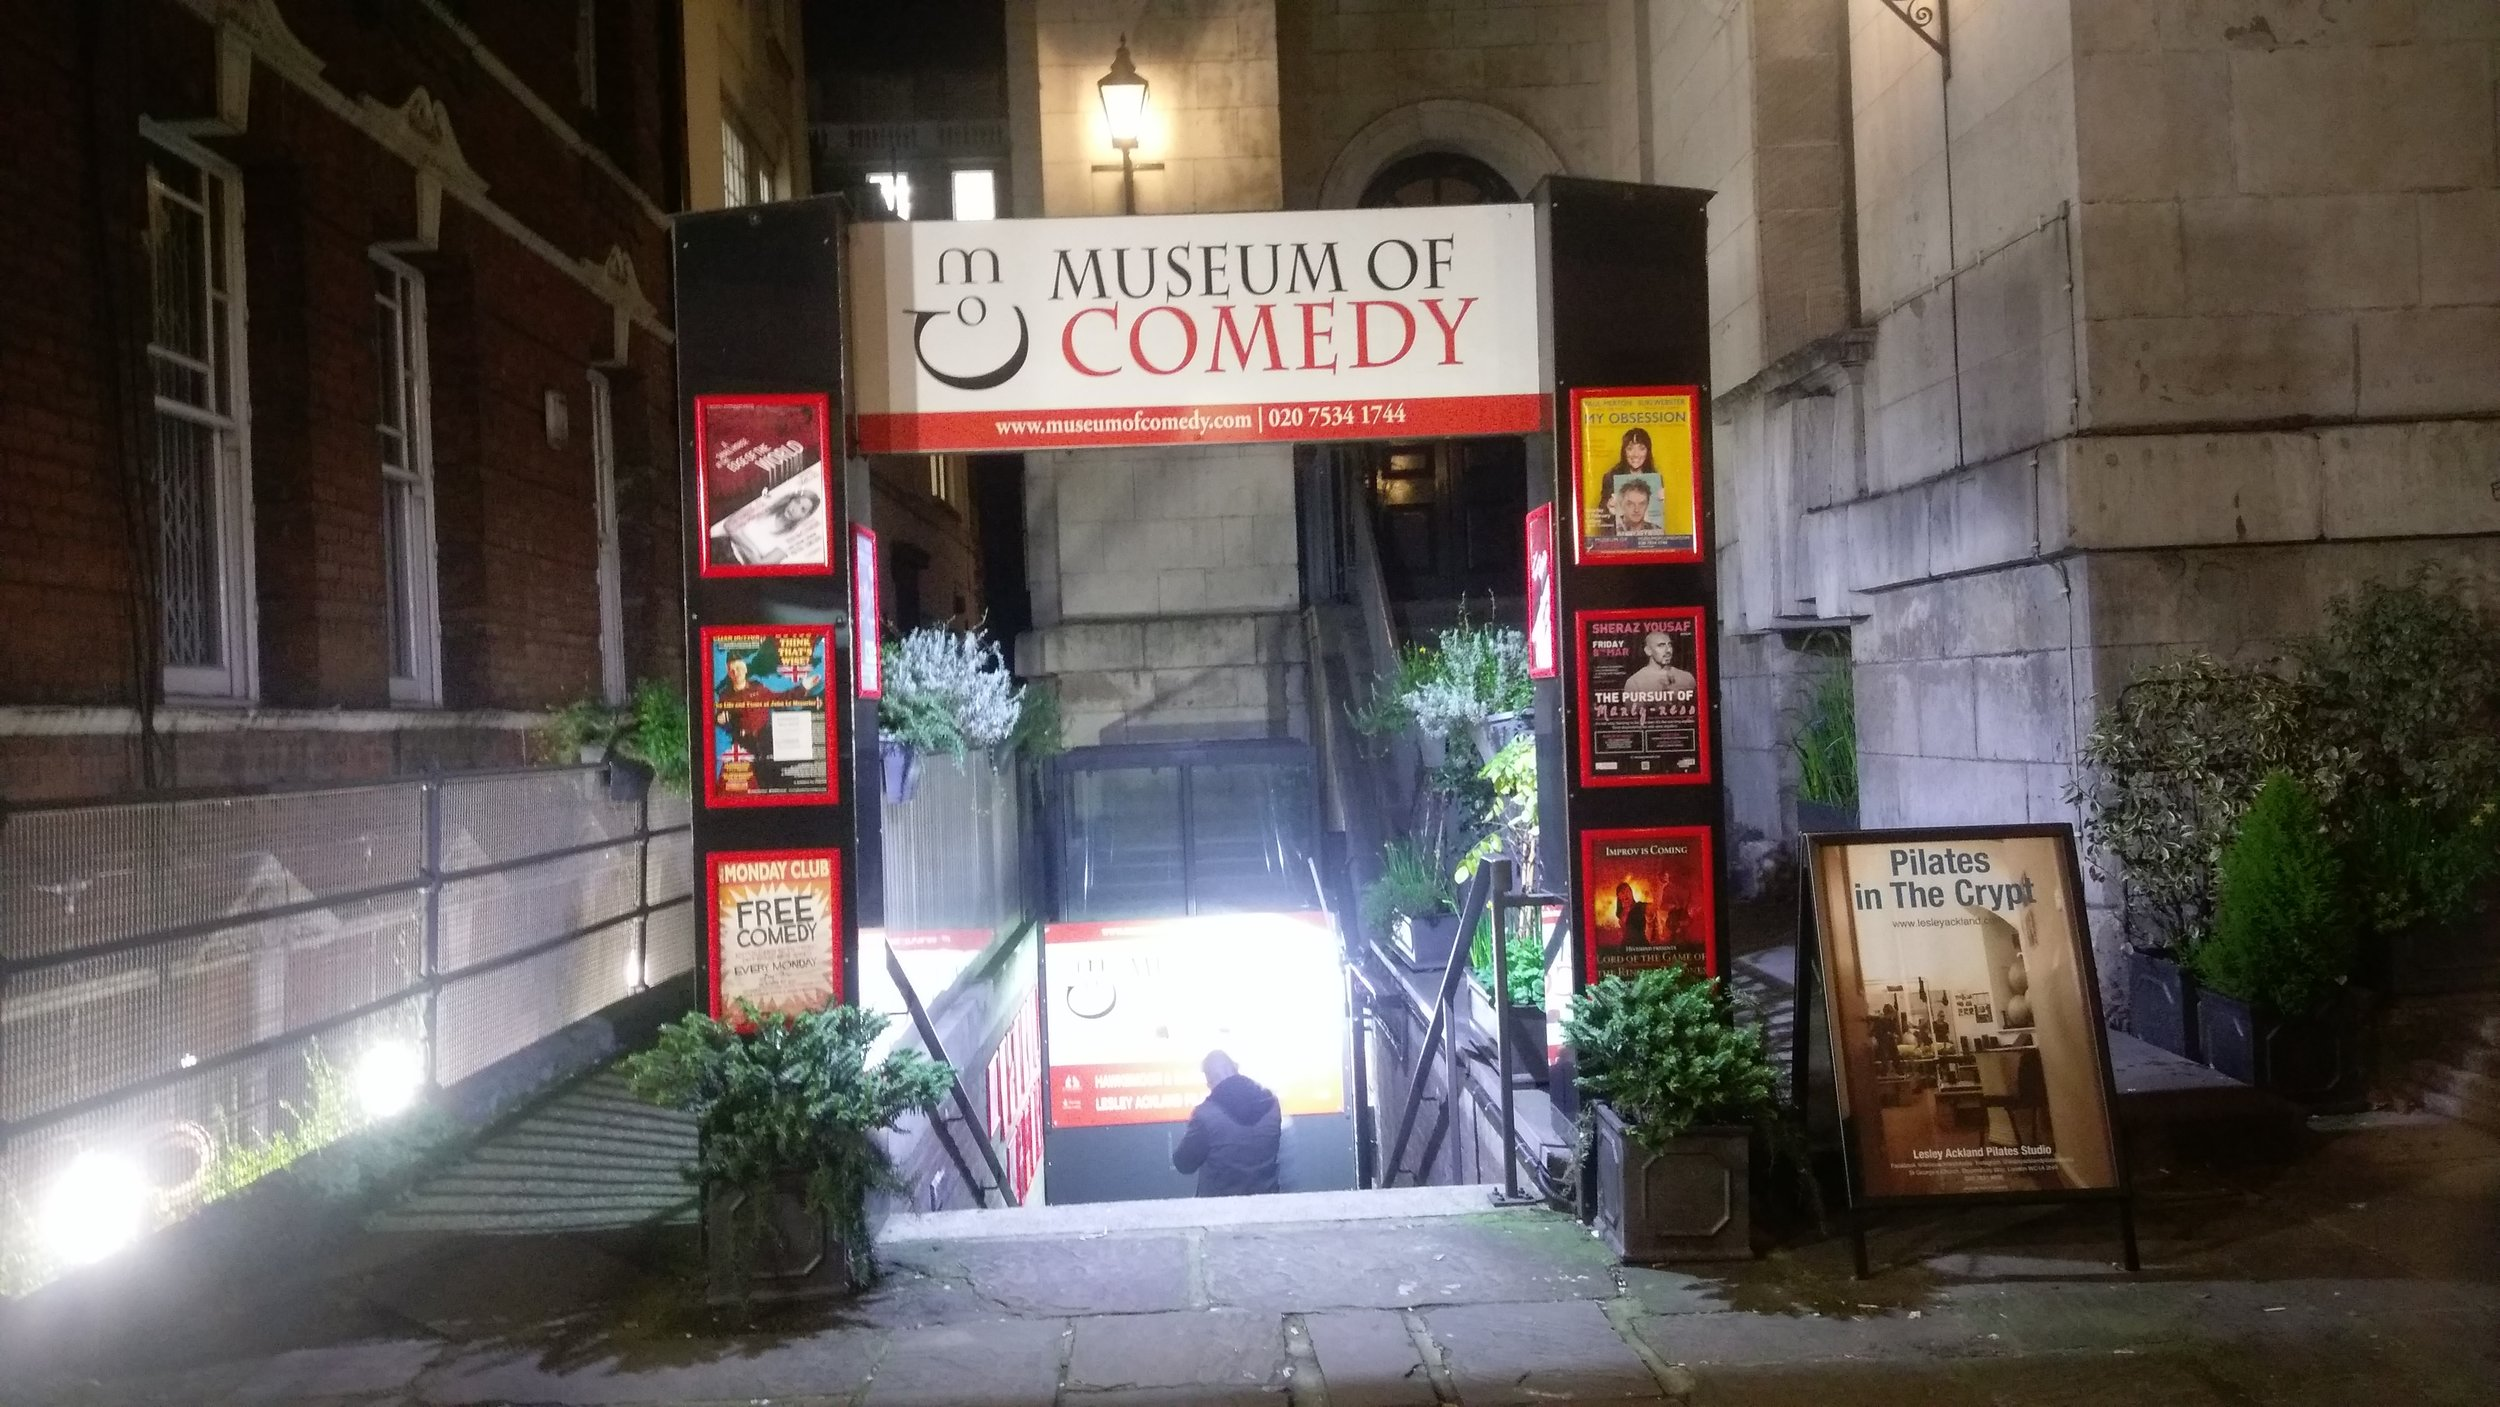 Museum of Comedy - visited 23/02/2019